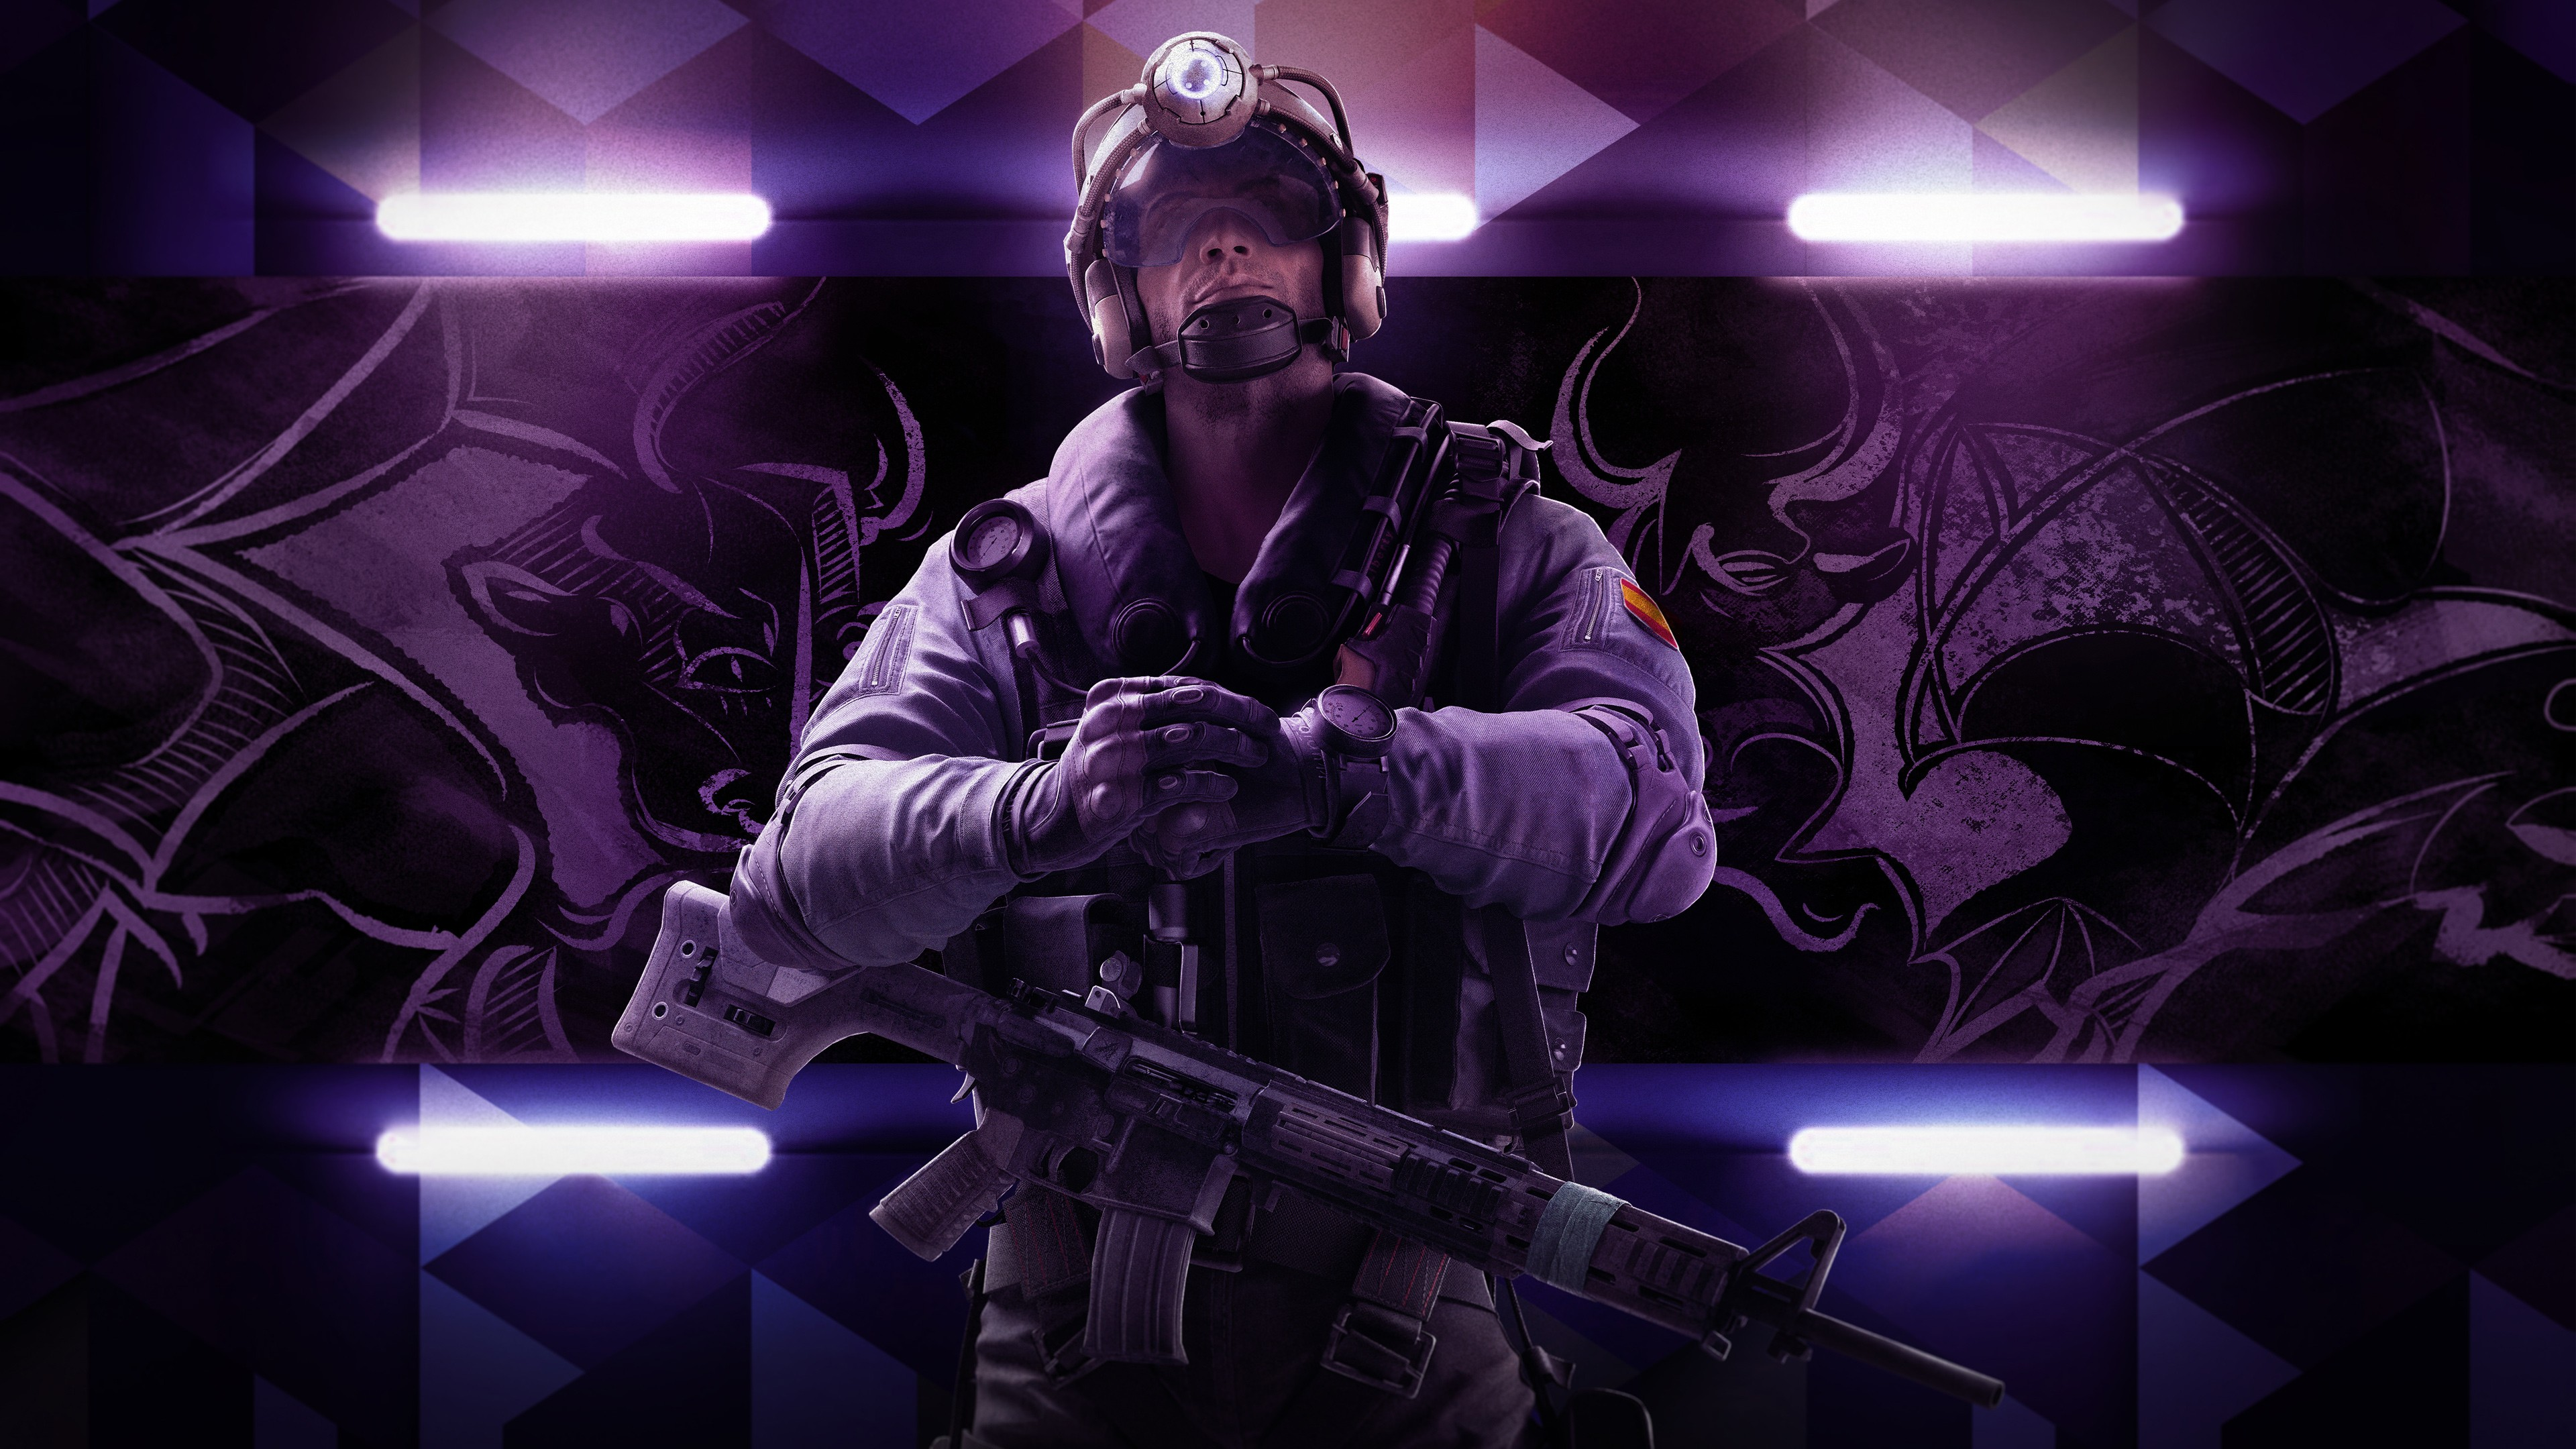 Rainbow Six Siege Wallpaper Background Animated